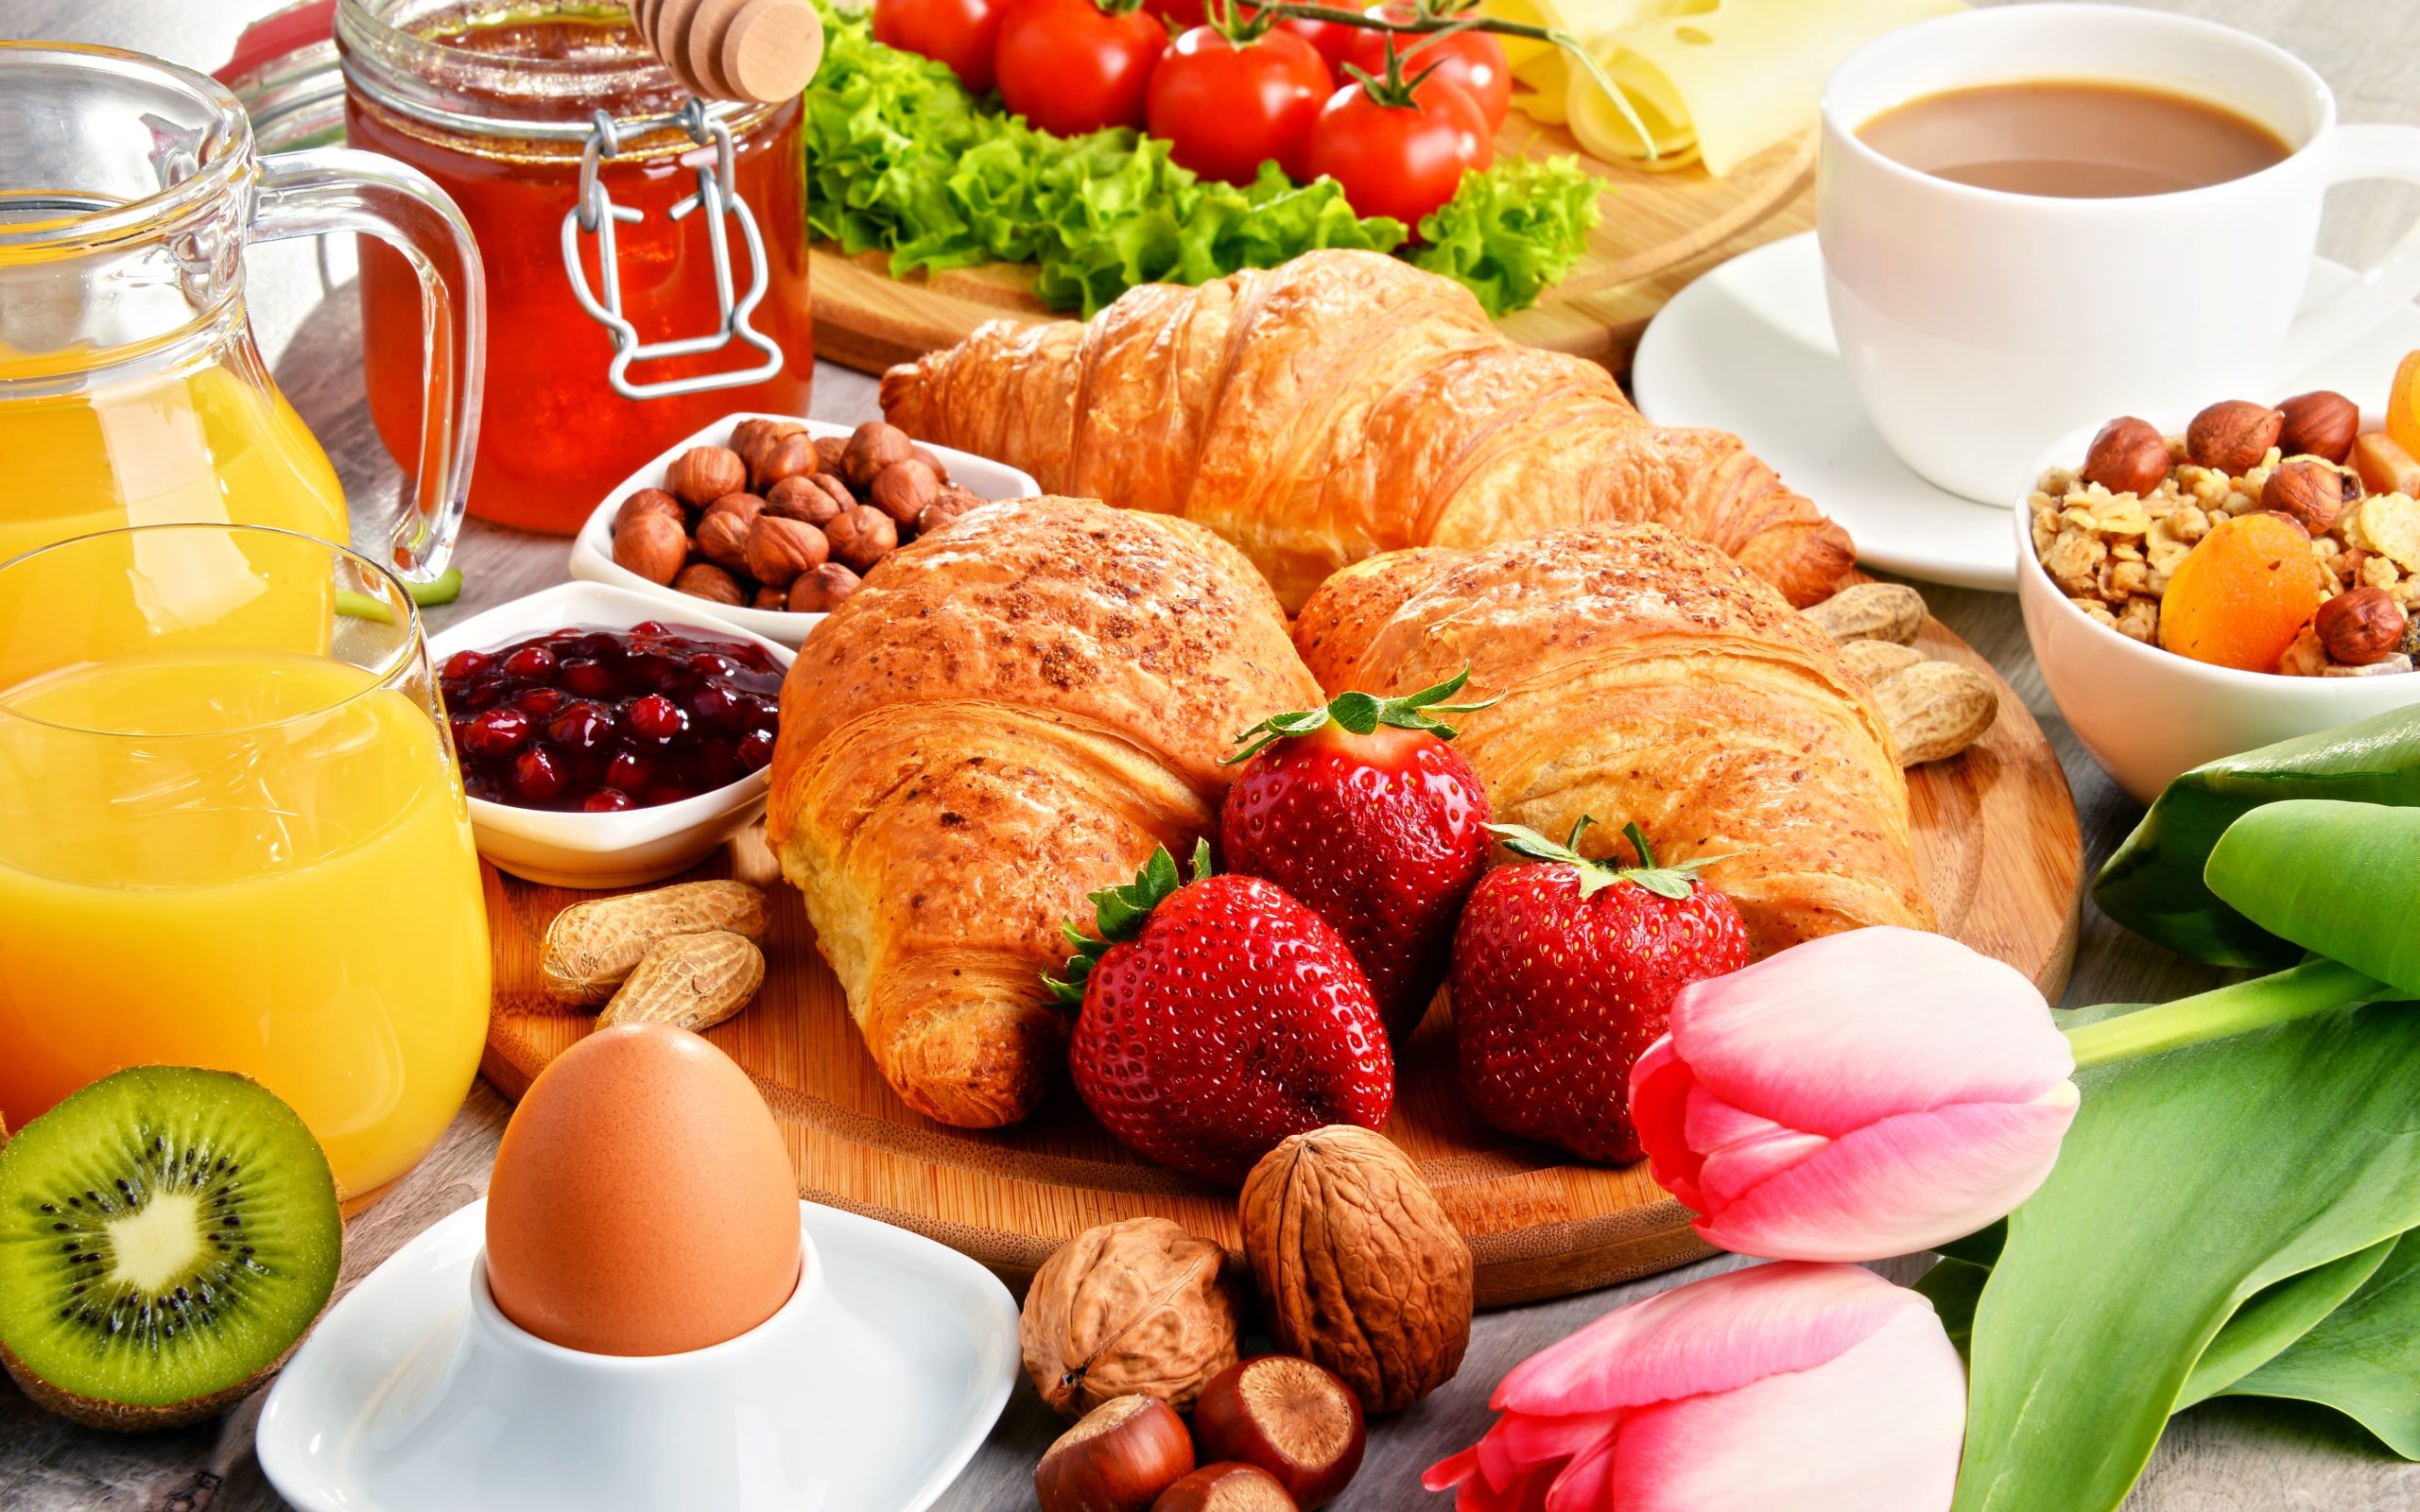 Best Anime Wallpaper Hd Wallpaper Breakfast Coffee Croissant Fruit Still Life